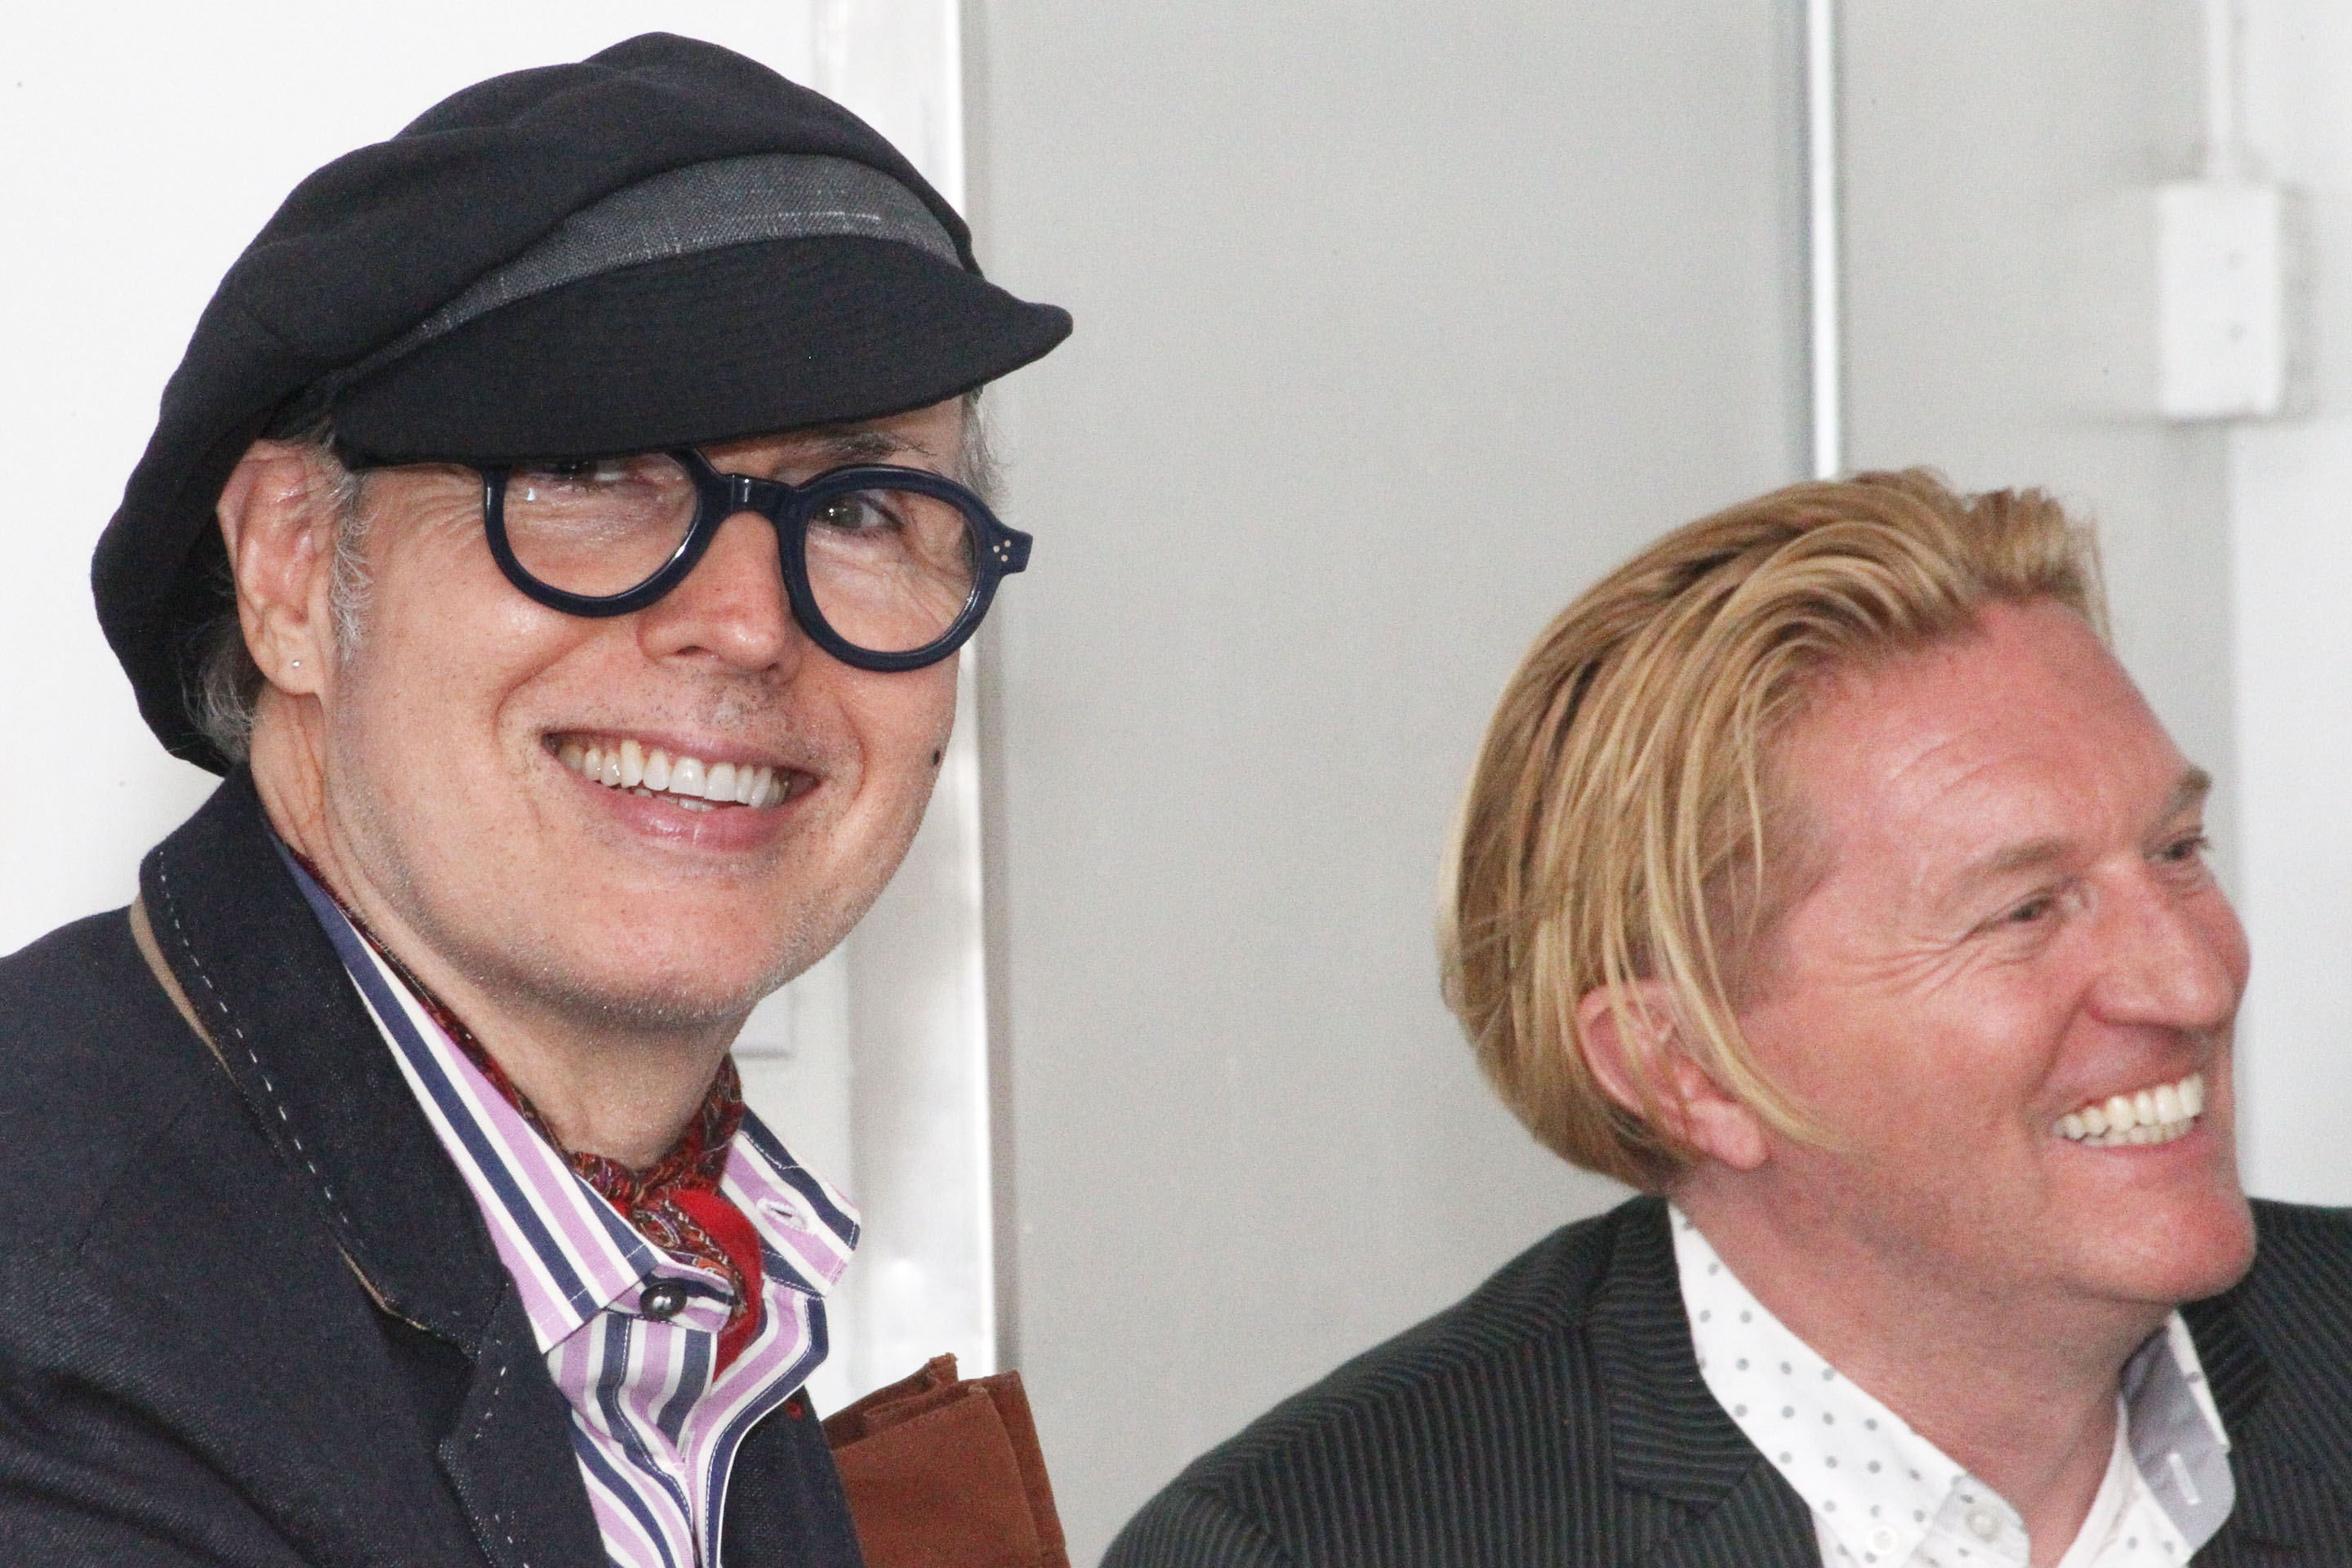 Dandy Patrick McDonald with Senior Director of Fashion Merchandising Keanan Duffty. Photo by Bob Toy.